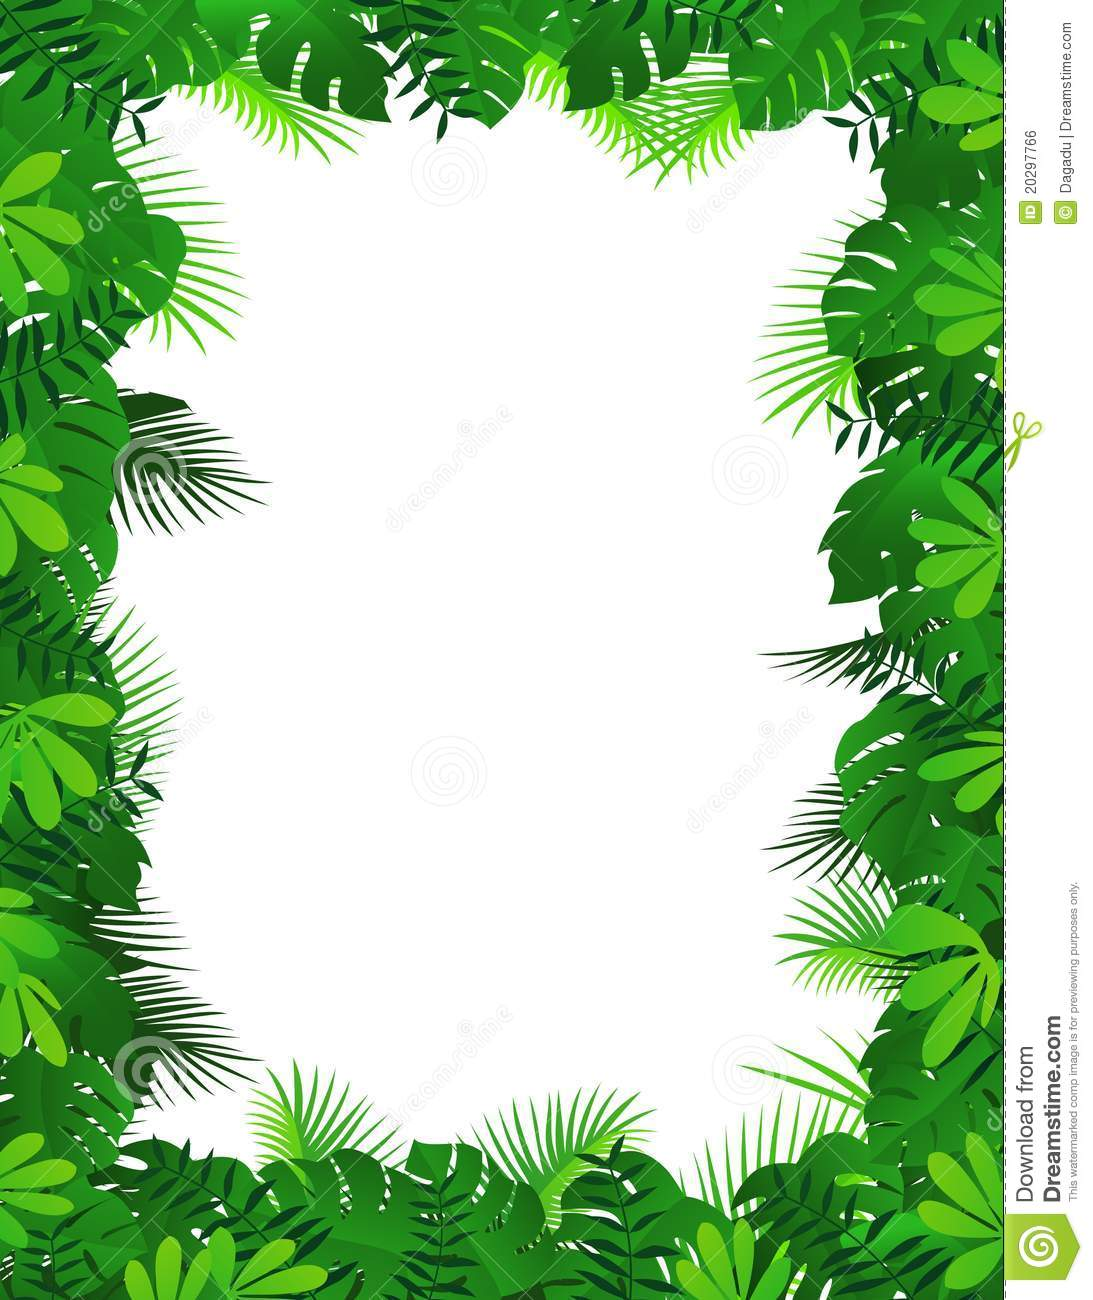 Forest Border Clipart